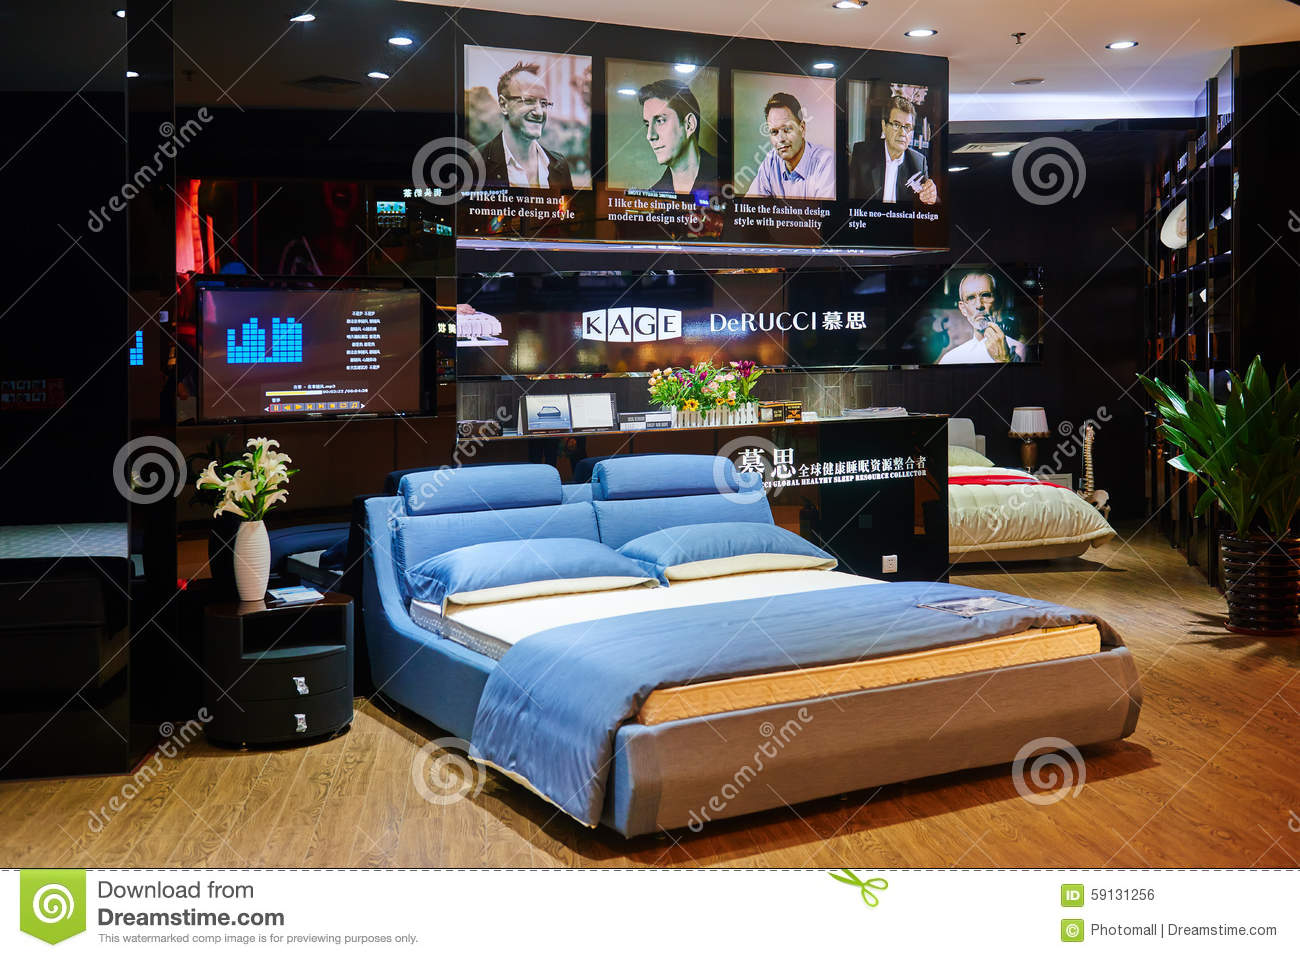 Bed Mattress Shop Trendy Bedroom Editorial Photo